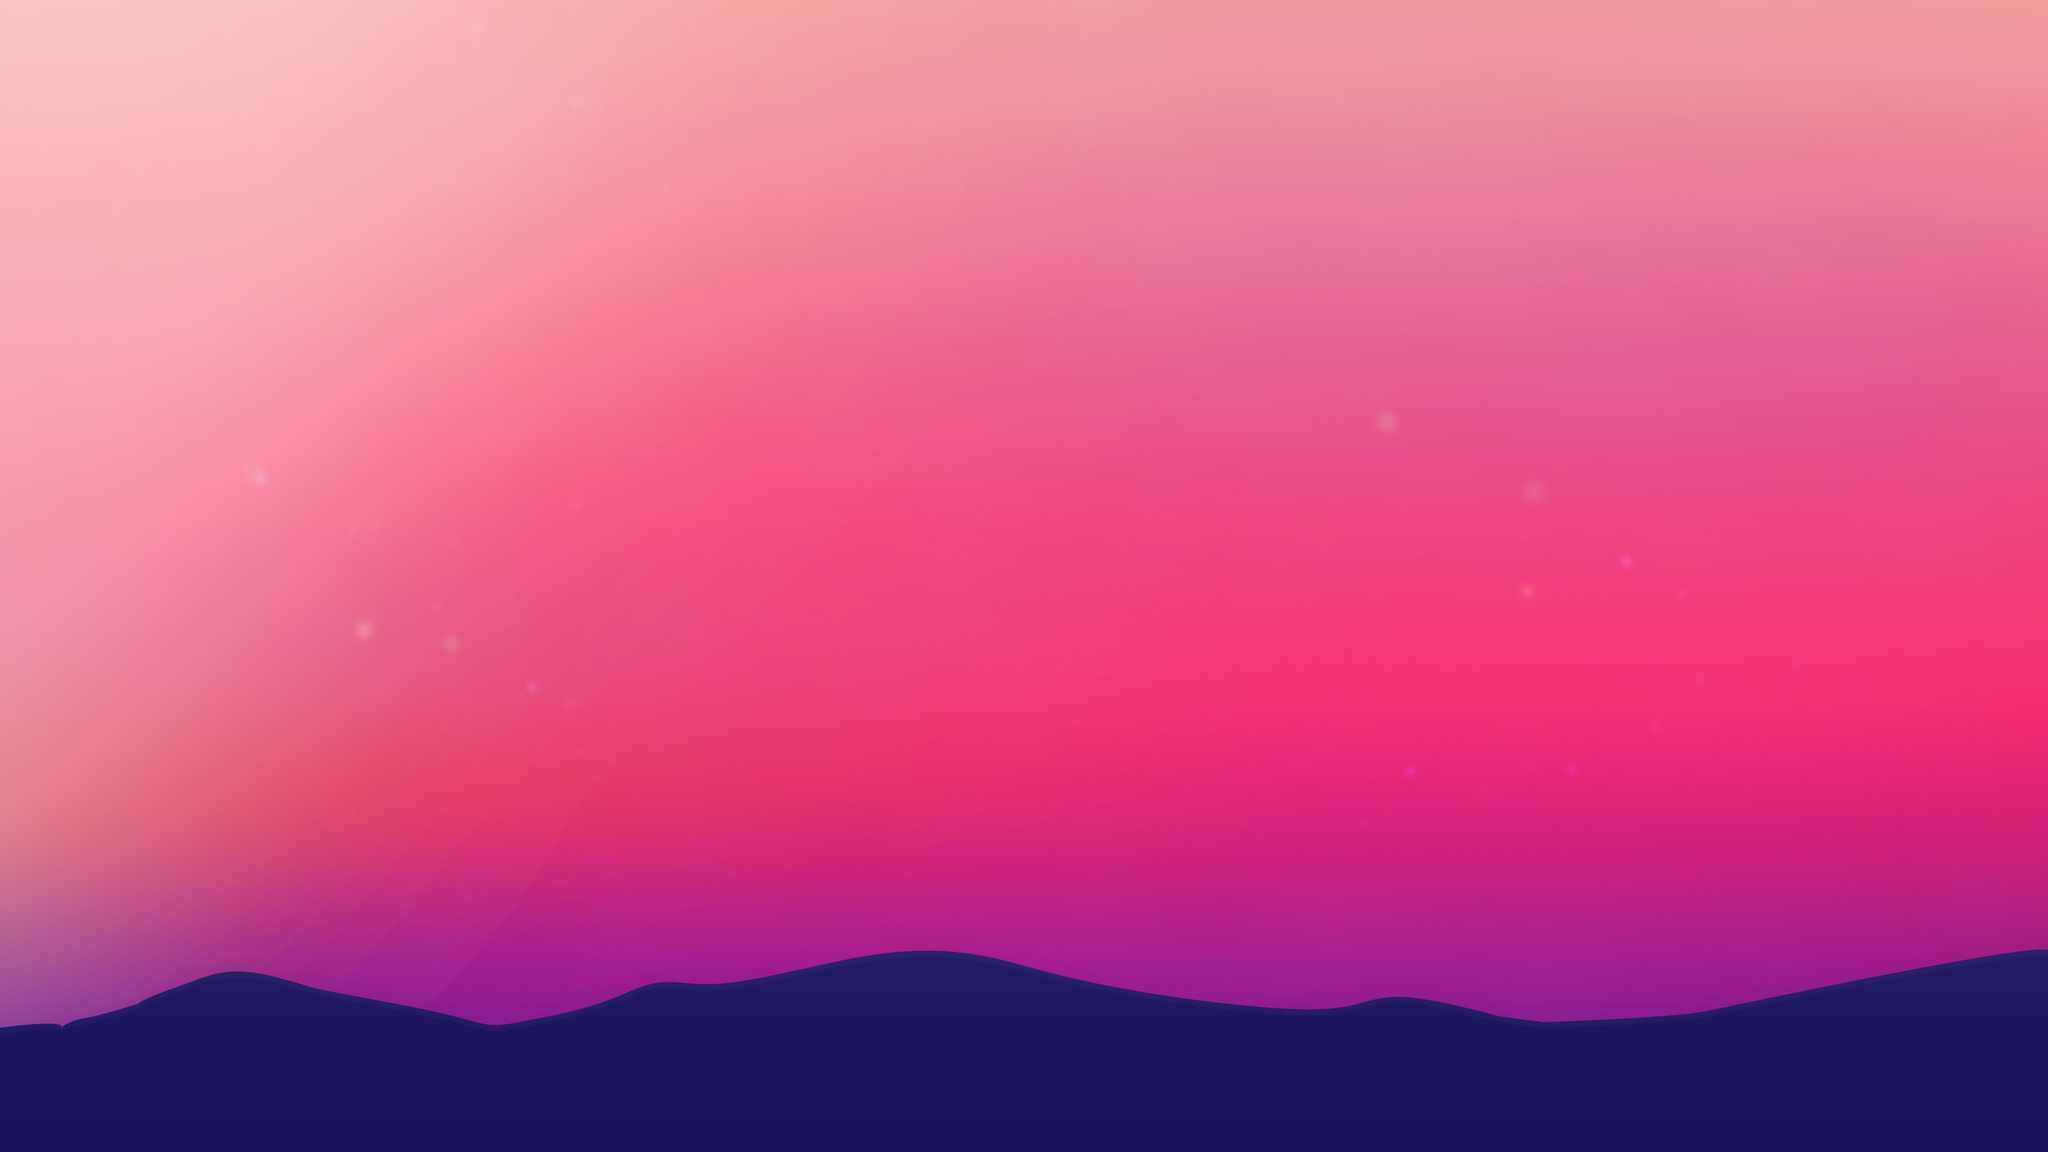 48x1152 Purple Landscape Scenery Minimalist 4k 48x1152 Resolution Hd 4k Wallpapers Images Backgrounds Photos And Pictures